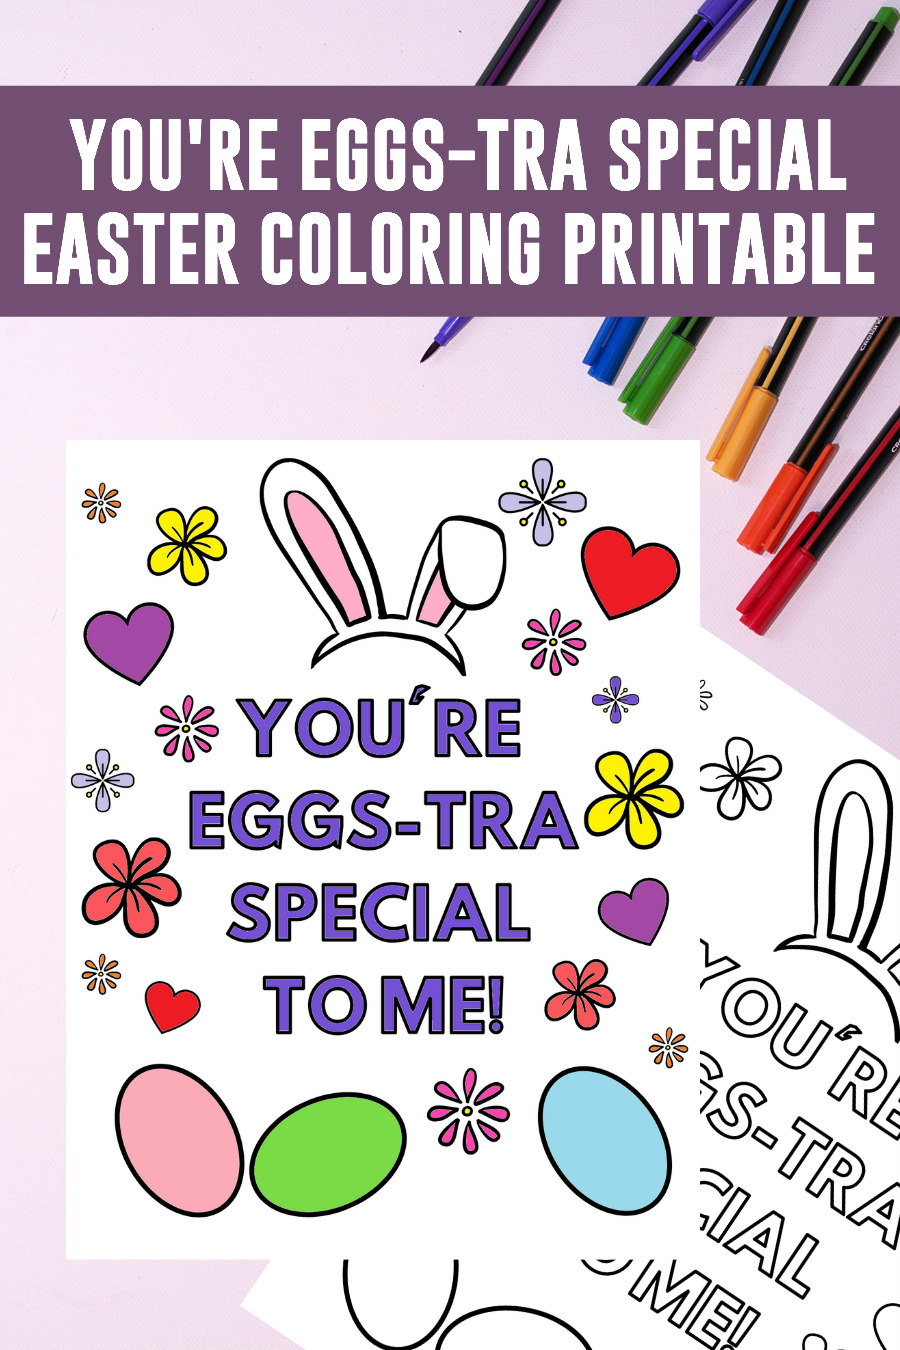 easter coloring printable